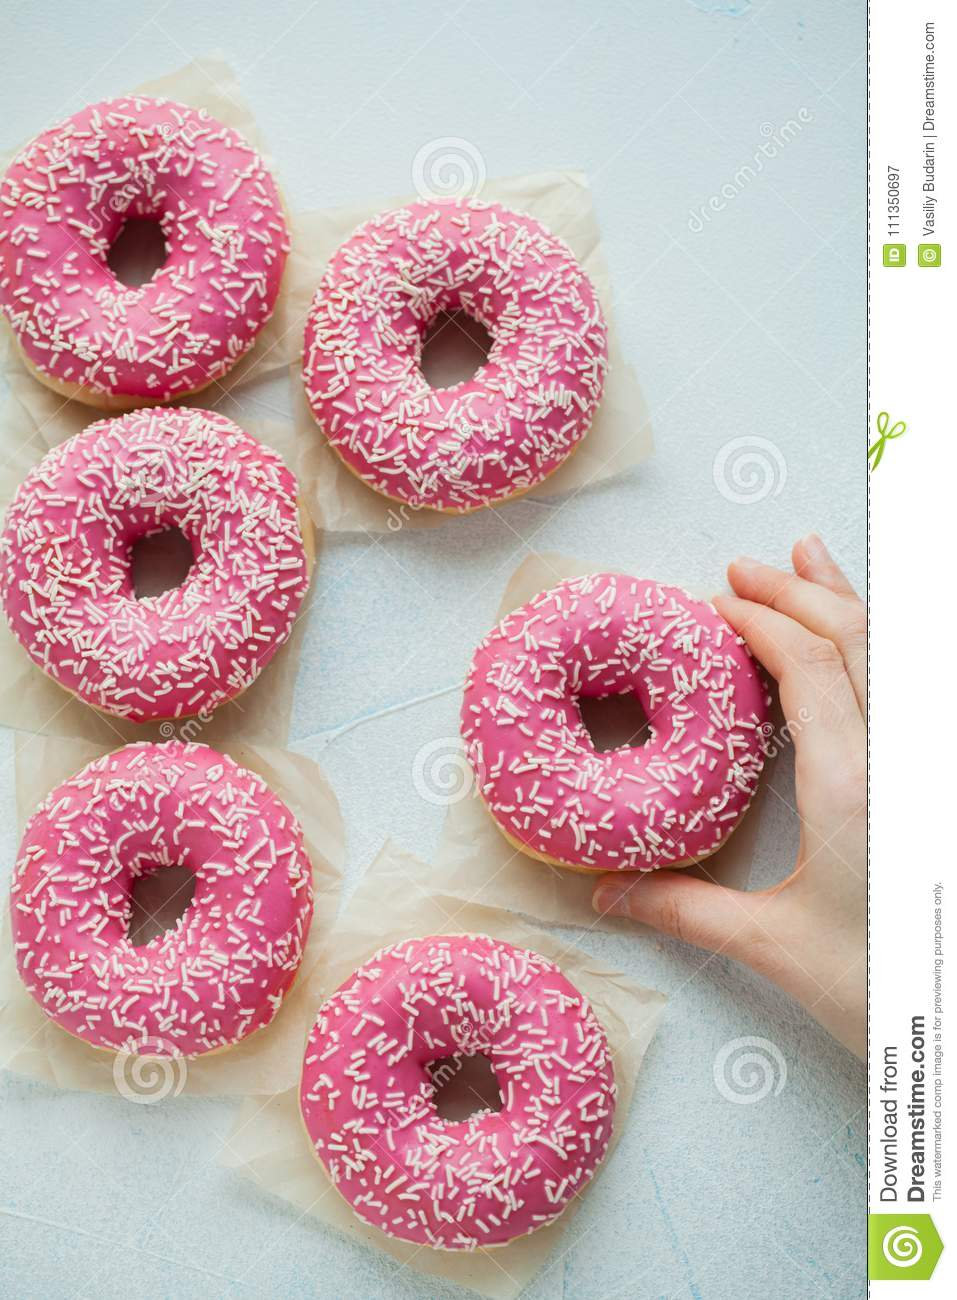 Donut. Sweet icing sugar food. Dessert colorful snack. Glazed sprinkles. Treat from delicious pastry breakfast. Bakery cake. Dough